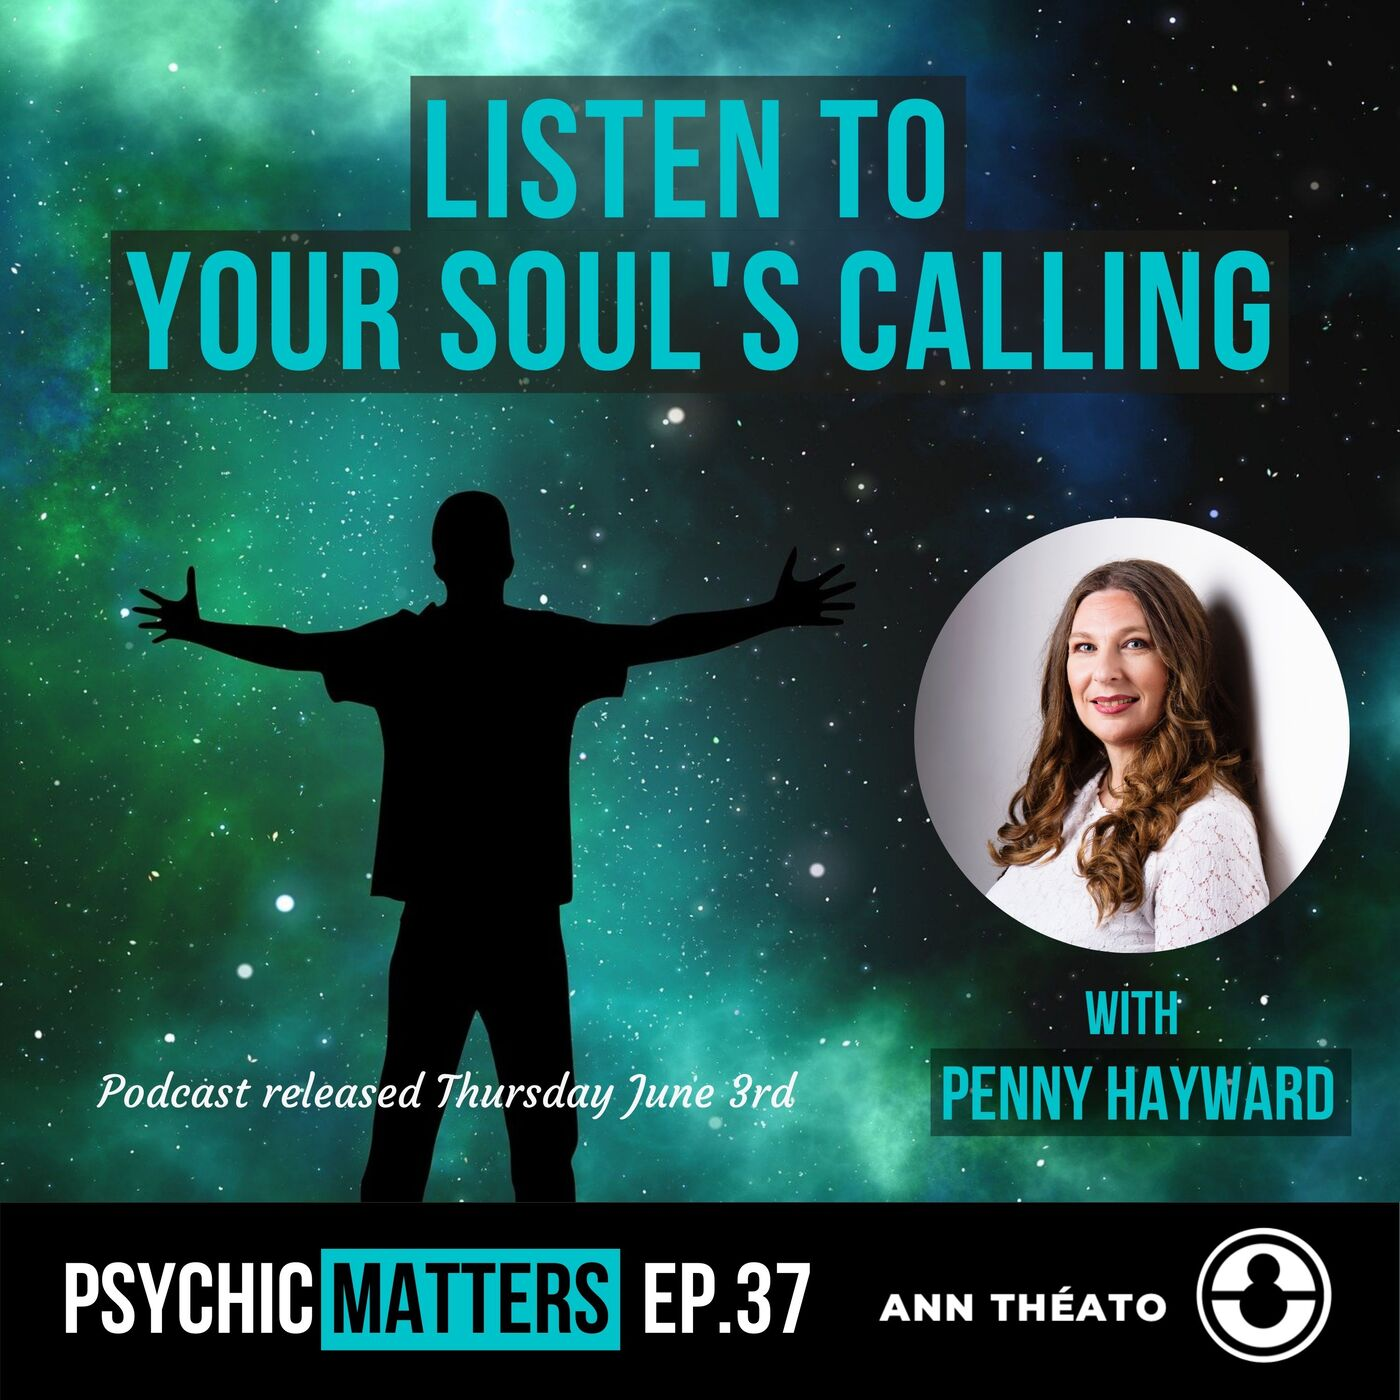 PM 037: Listen To Your Soul's Calling with Penny Hayward